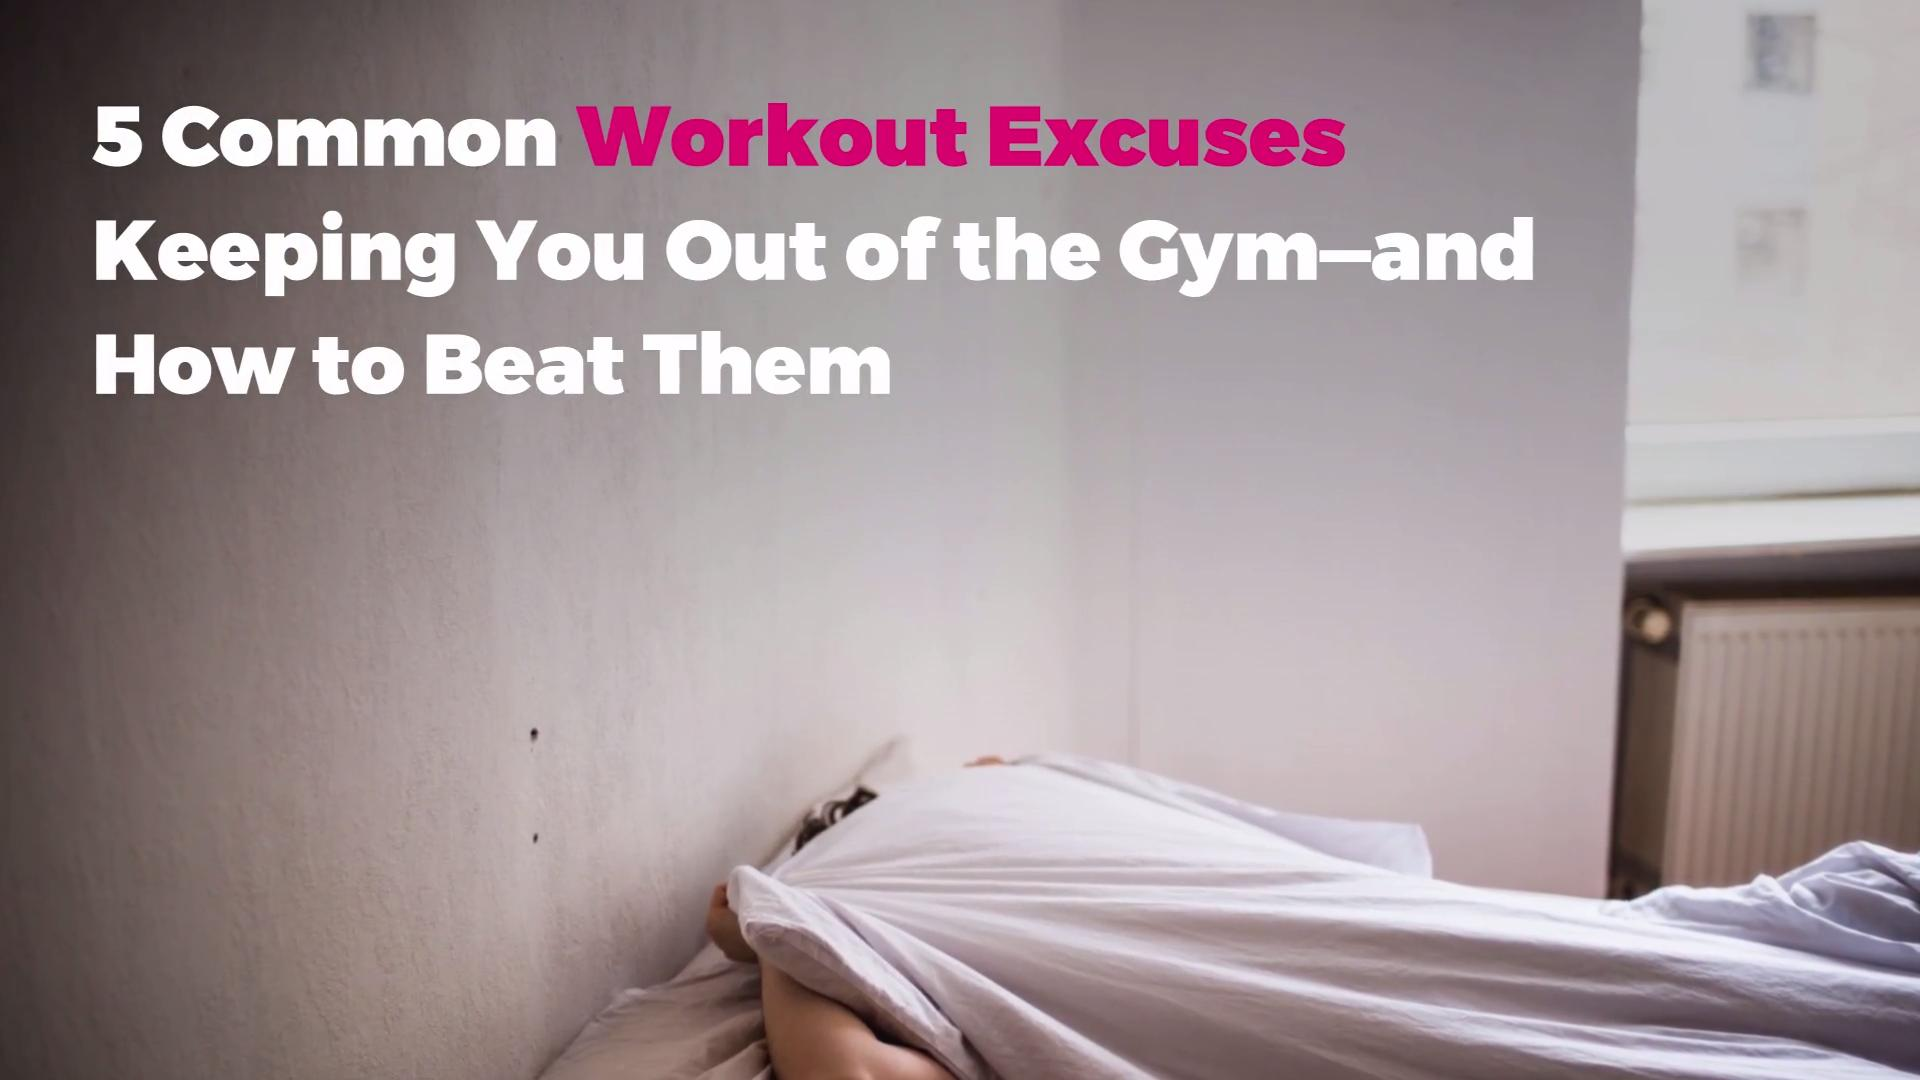 5 Common Workout Excuses Keeping You Out of the Gym—and How to Beat Them